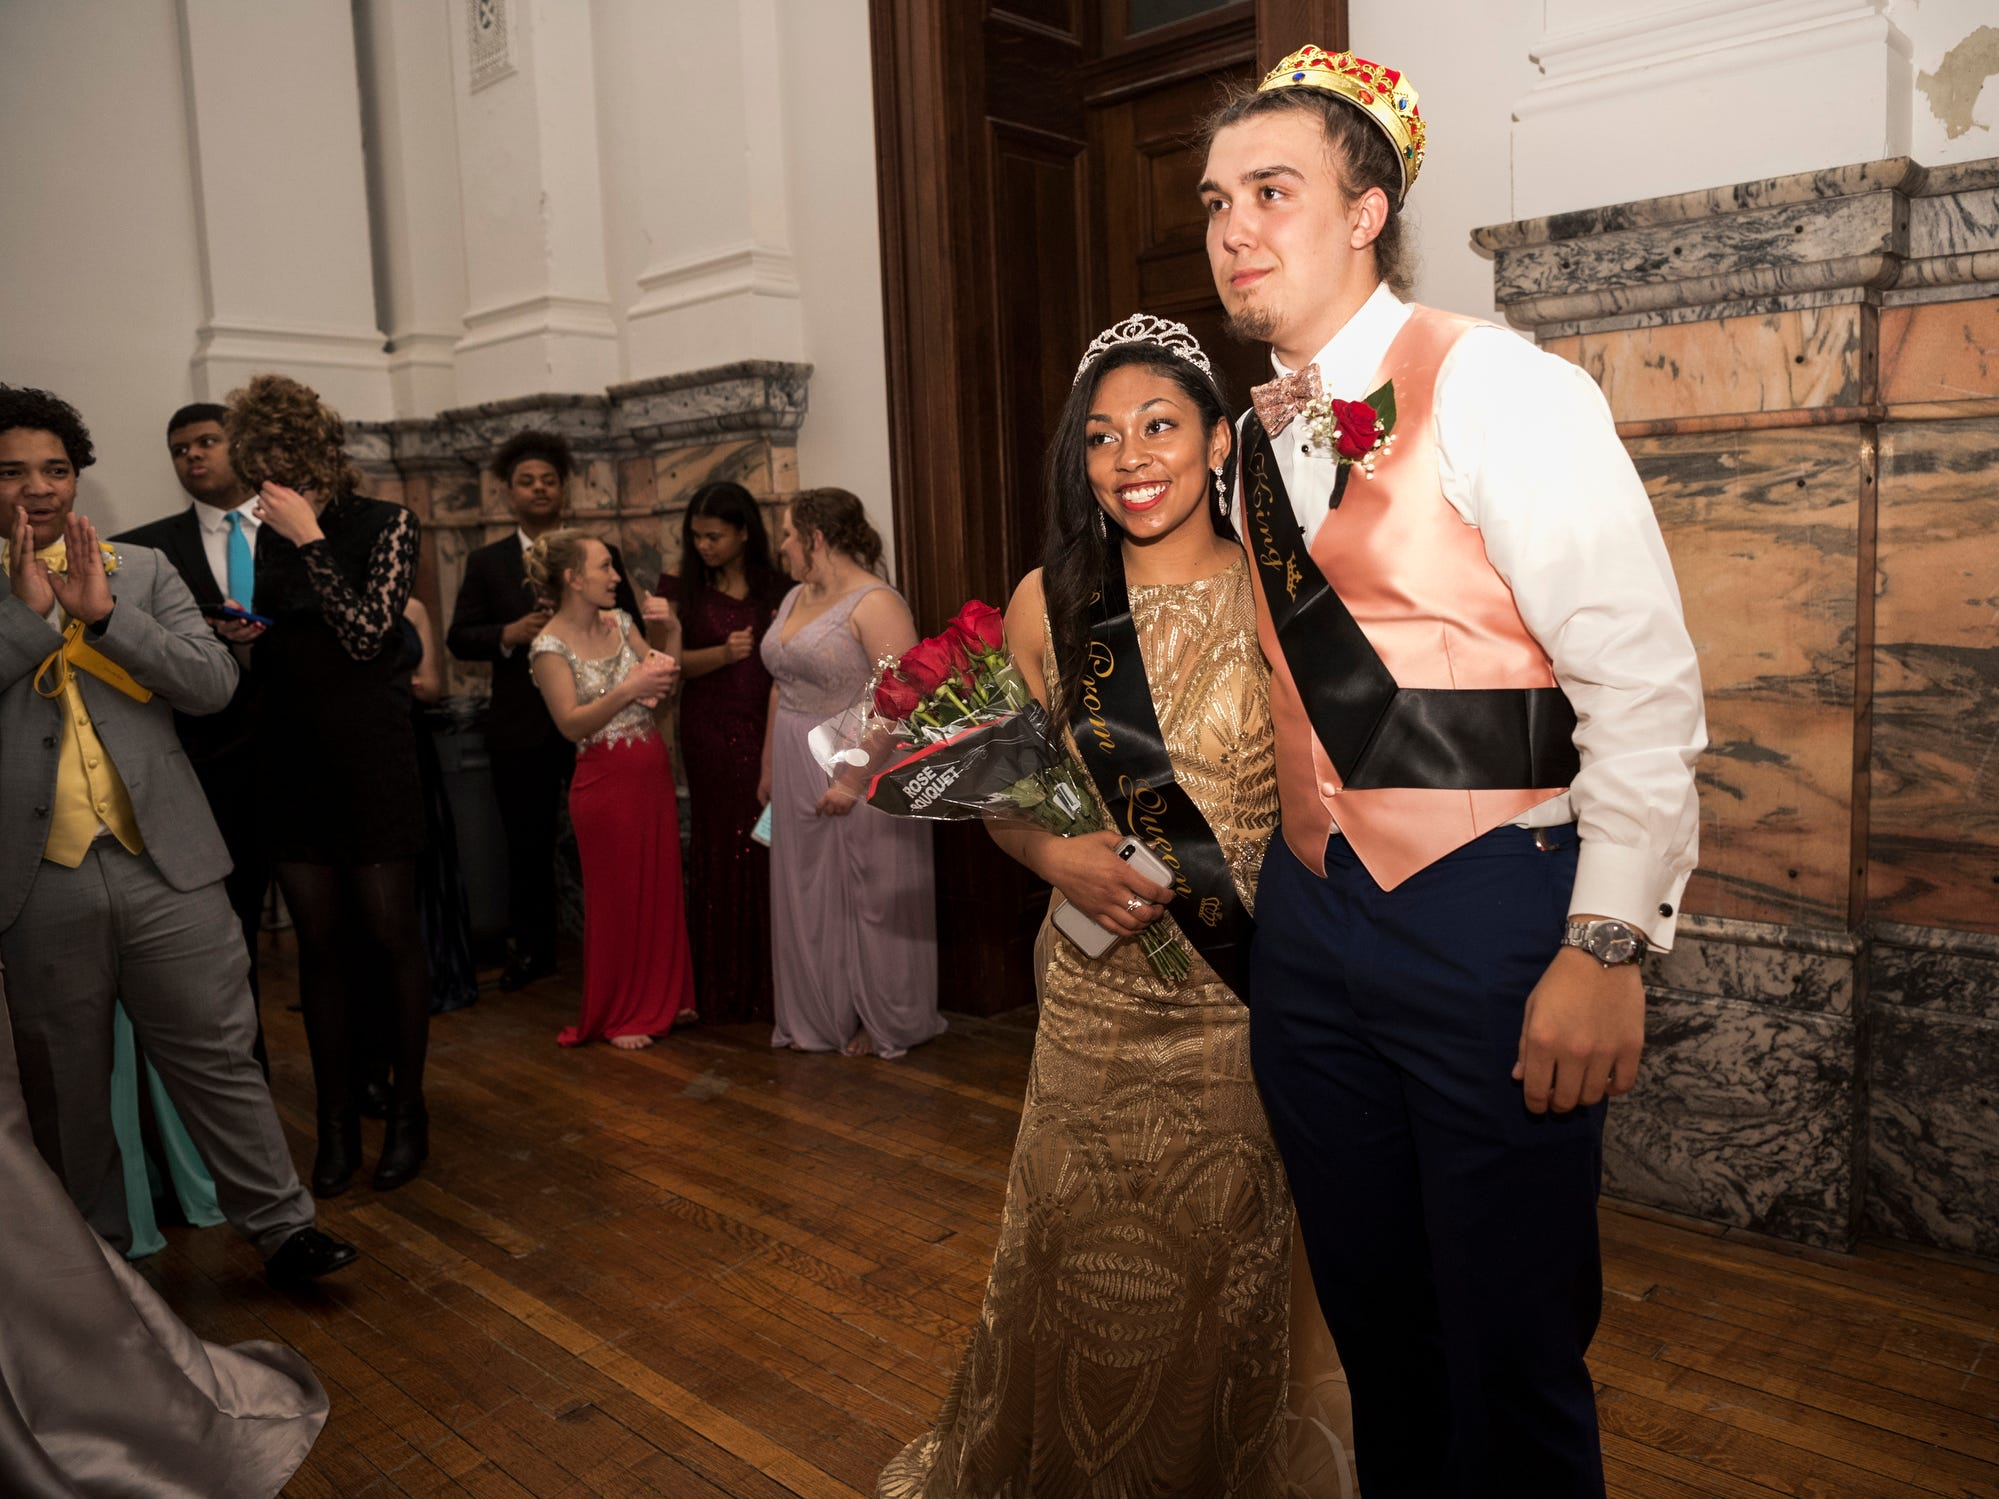 Bosse High School students Jasmine Catlett and Kyran Husk pose for pictures after being named 2019 prom queen and king during the dance at the Old Vanderburgh County Courthouse in downtown Evansville, Ind., Saturday, April 6, 2019.